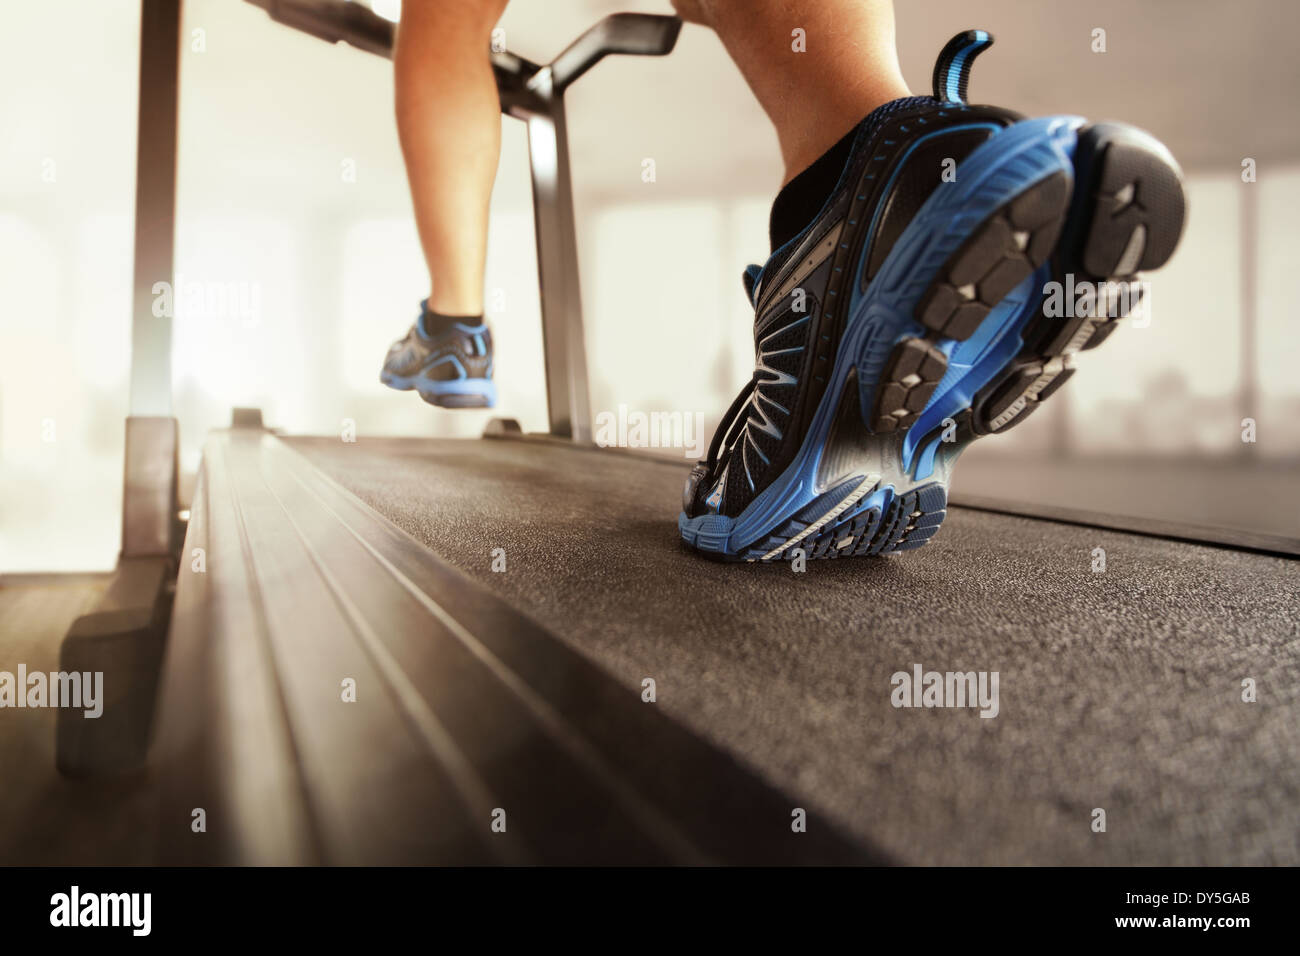 Running on a treadmill - Stock Image